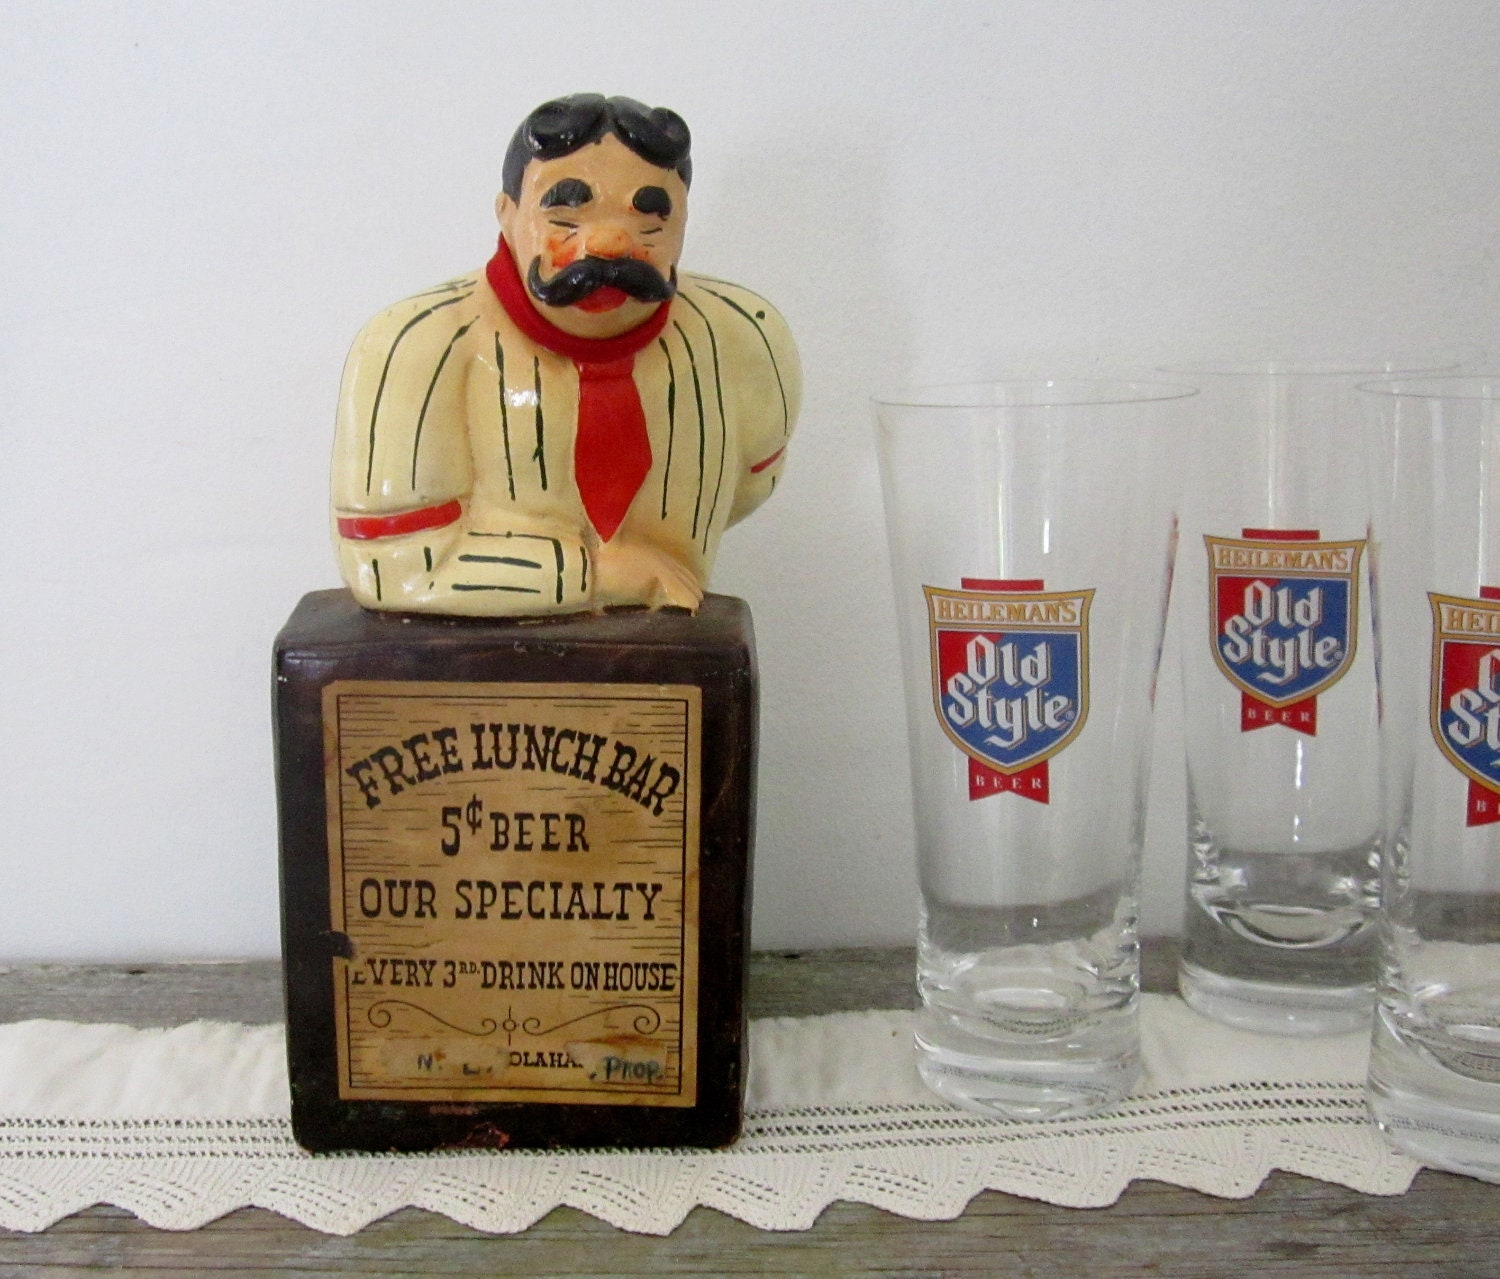 Man Cave Gifts For Him : Vintage bar decor man cave gift for him by